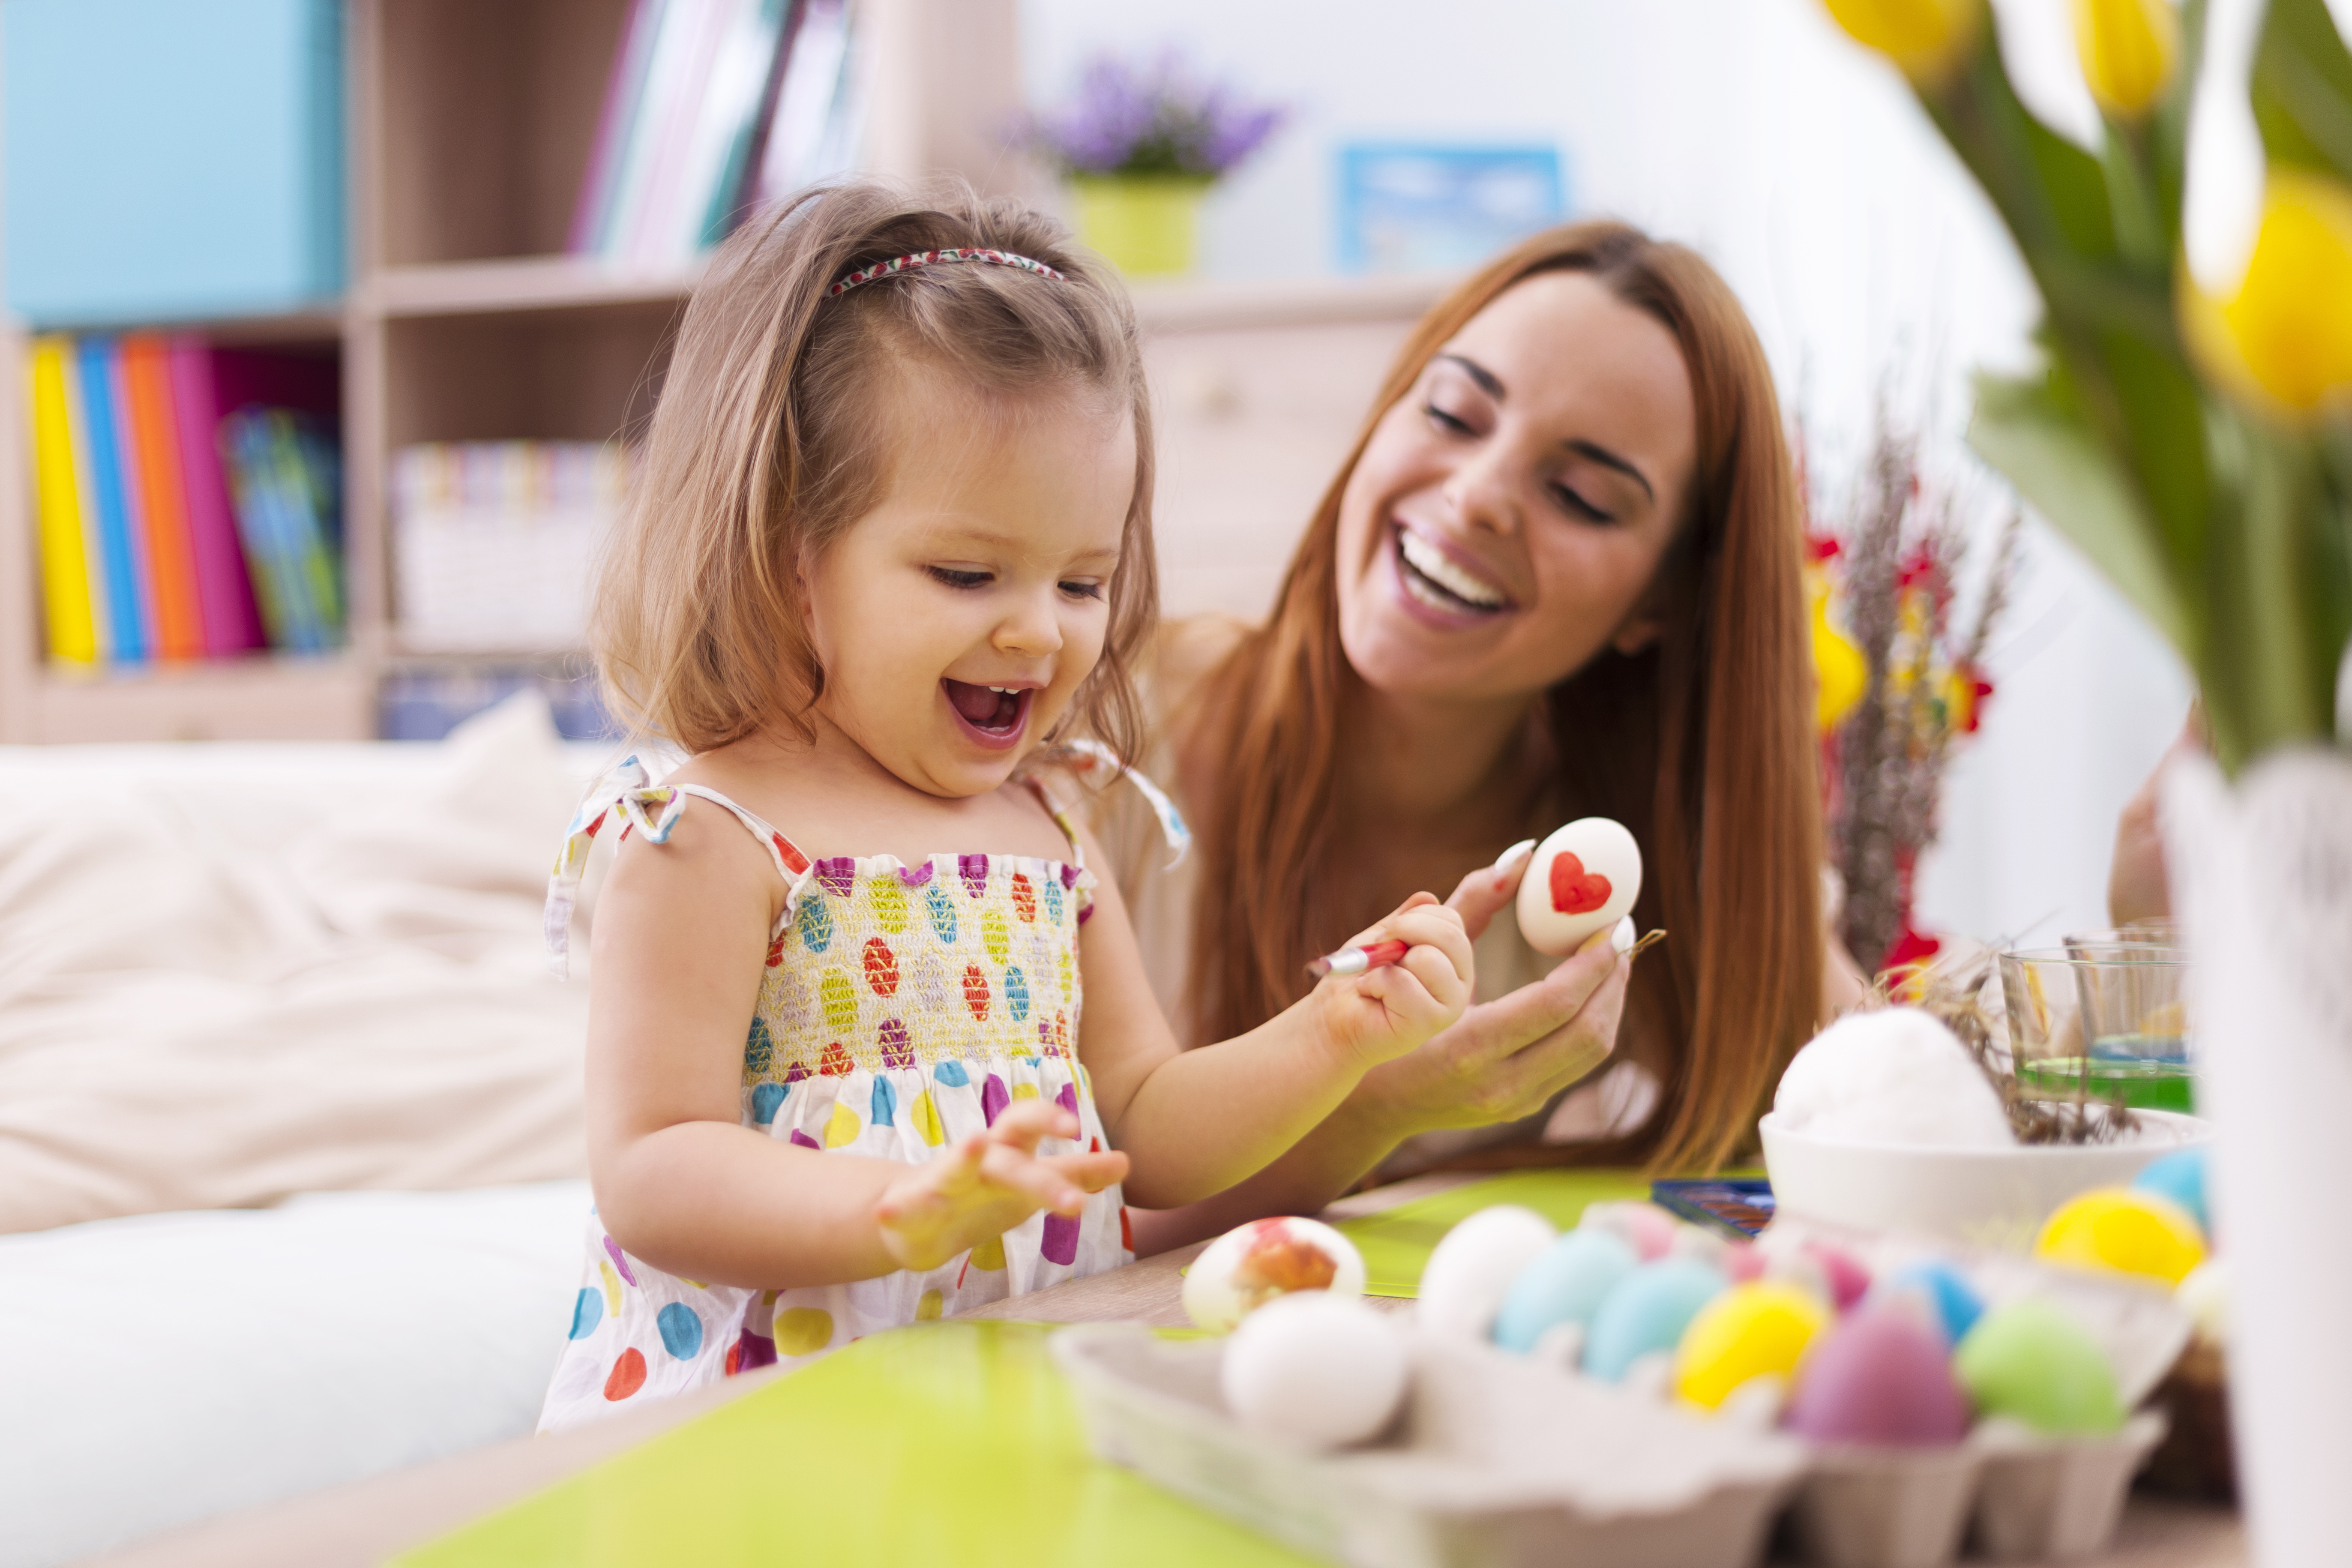 Babysitter painting eggs with toddler girl